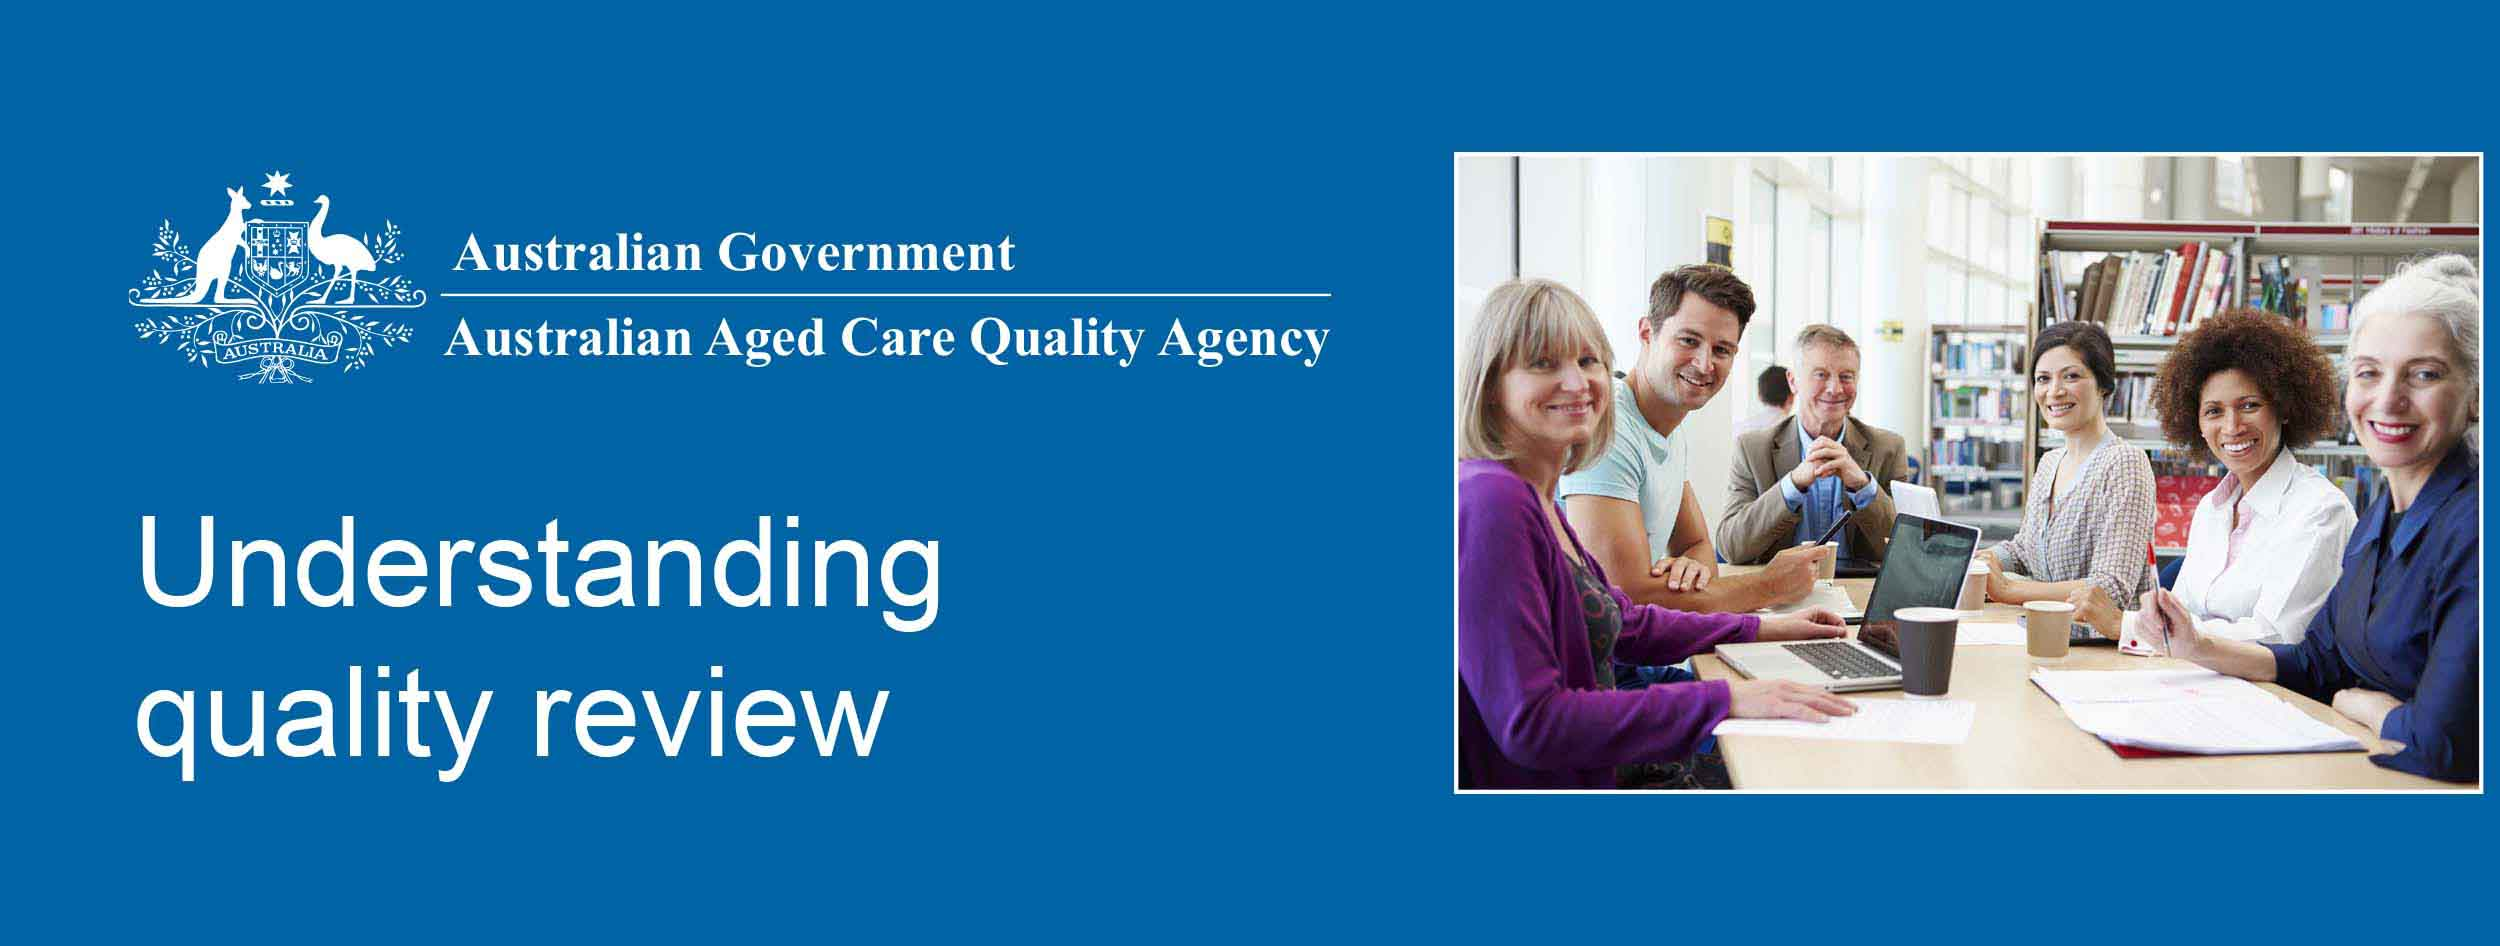 Understanding quality review - Brisbane - 29 - 30 August 2017